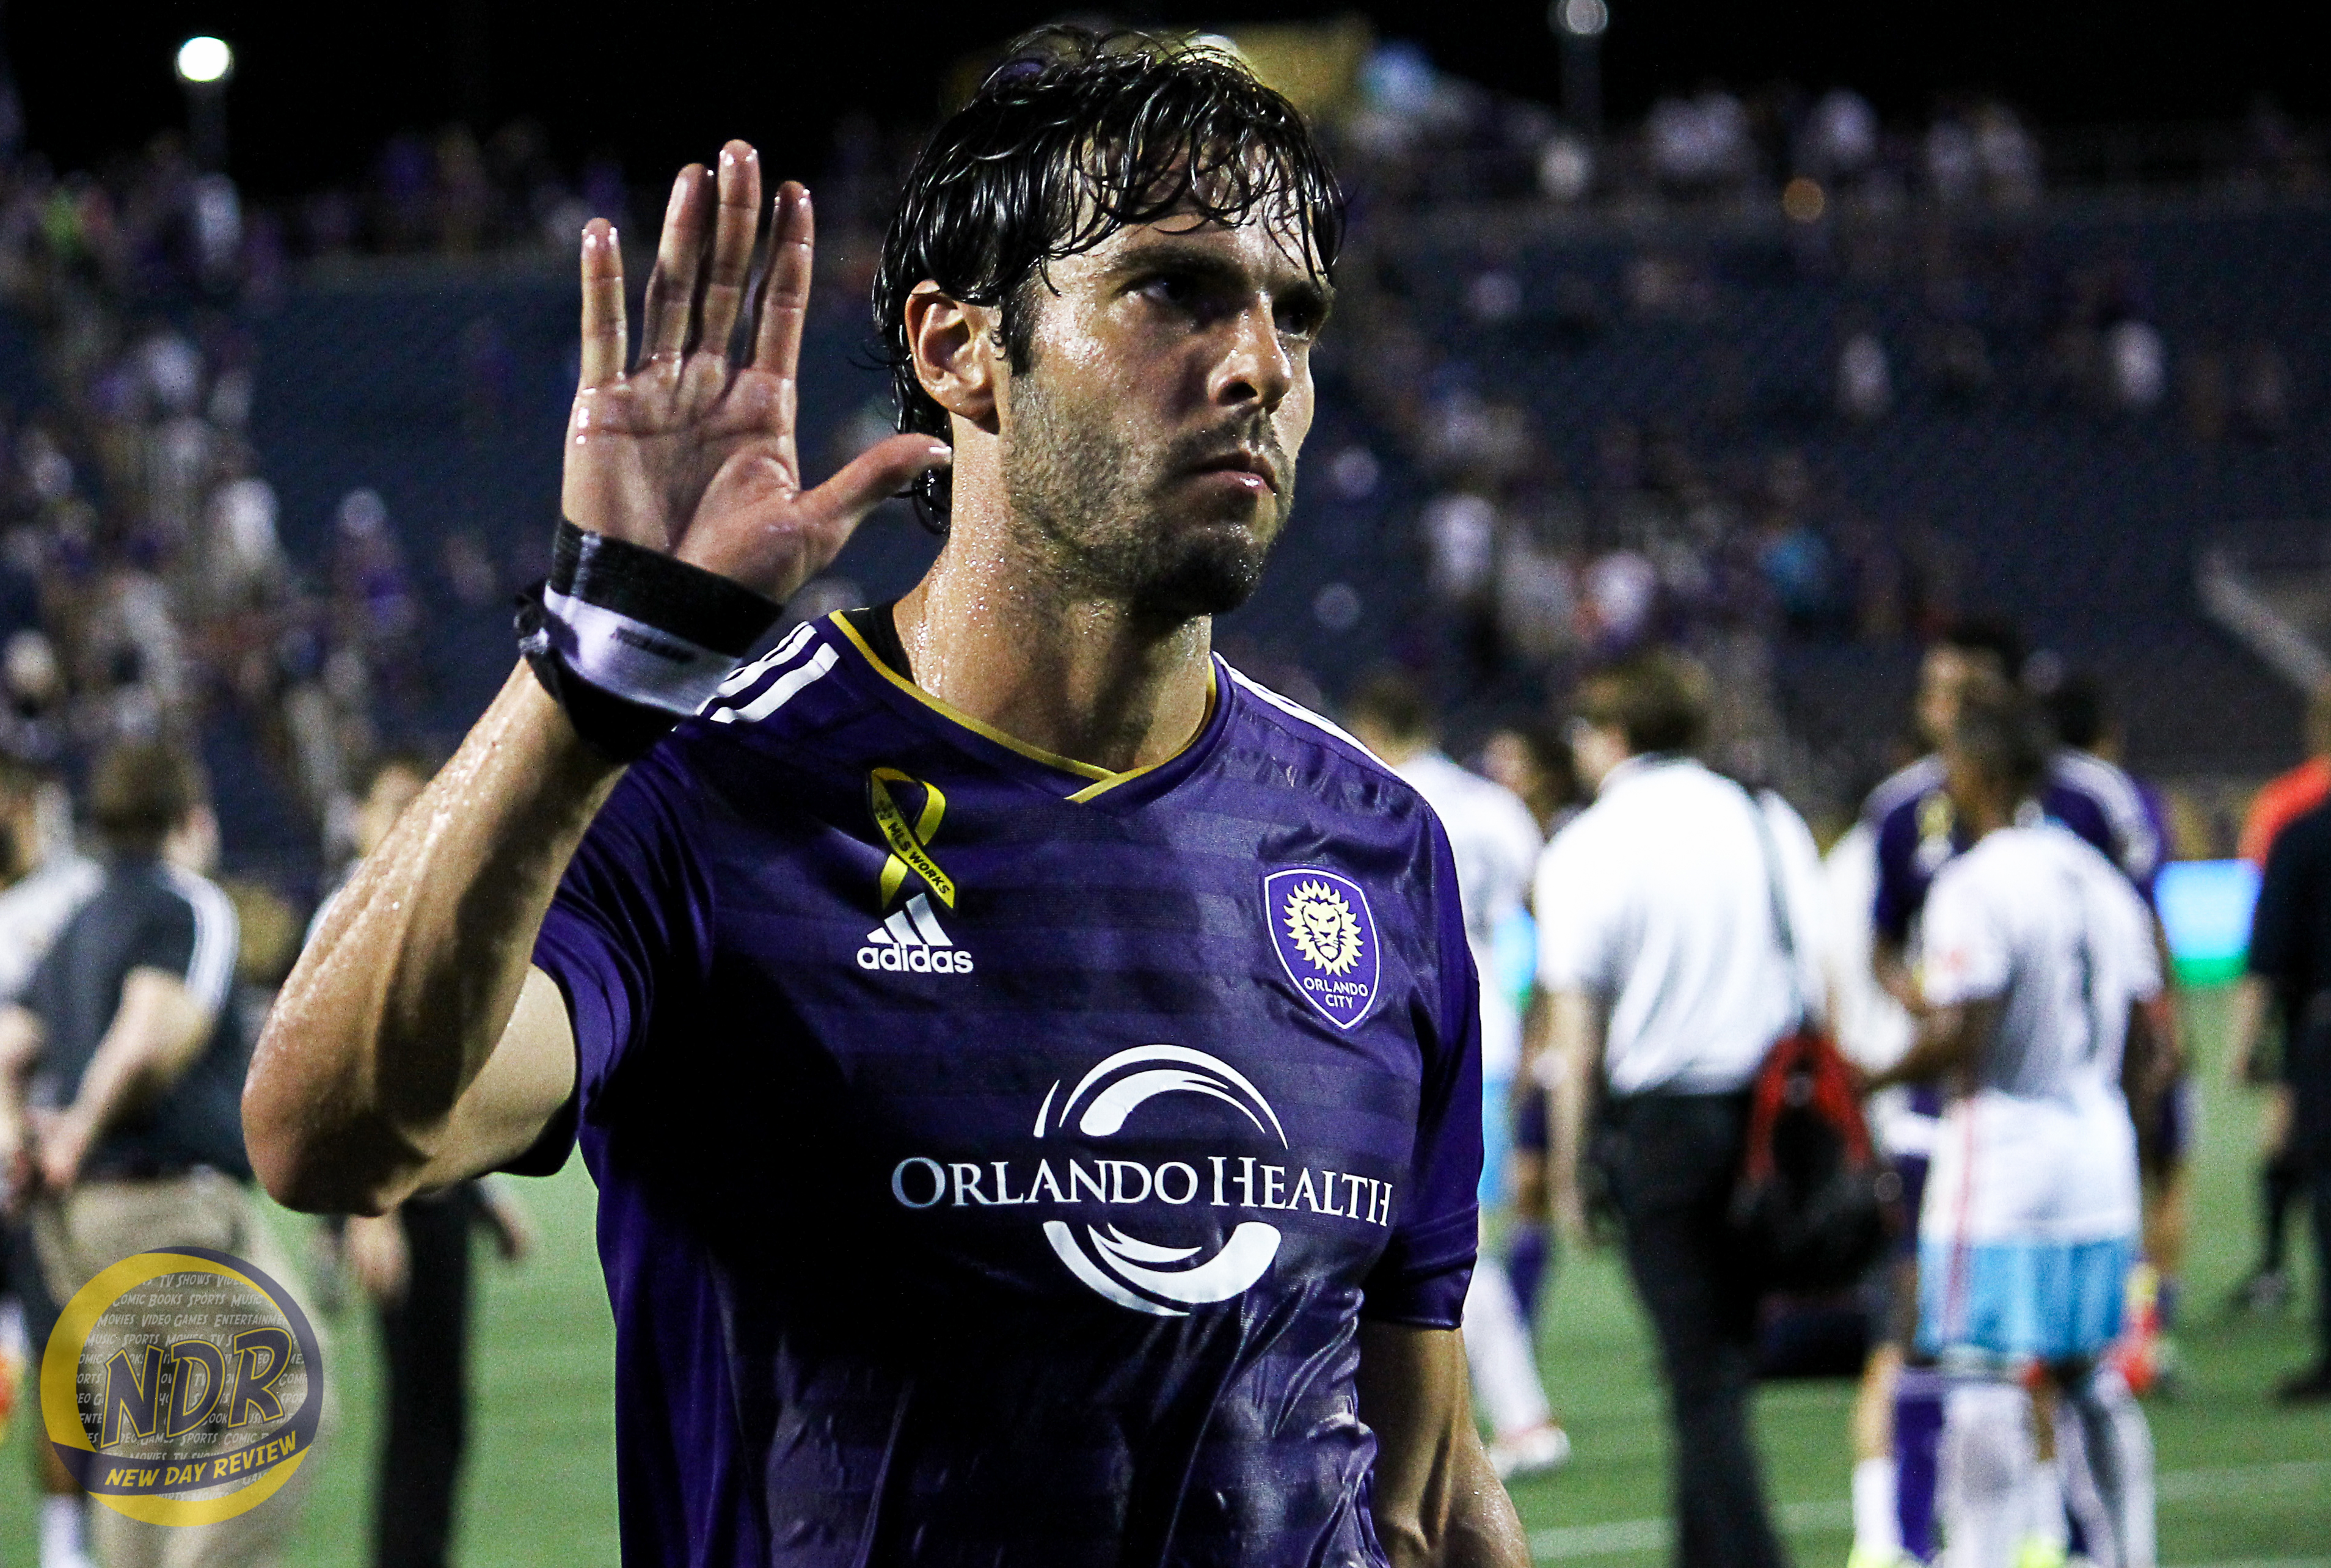 Ricardo Kaká Says 2017 Season Is His Last in Orlando — New Day Review